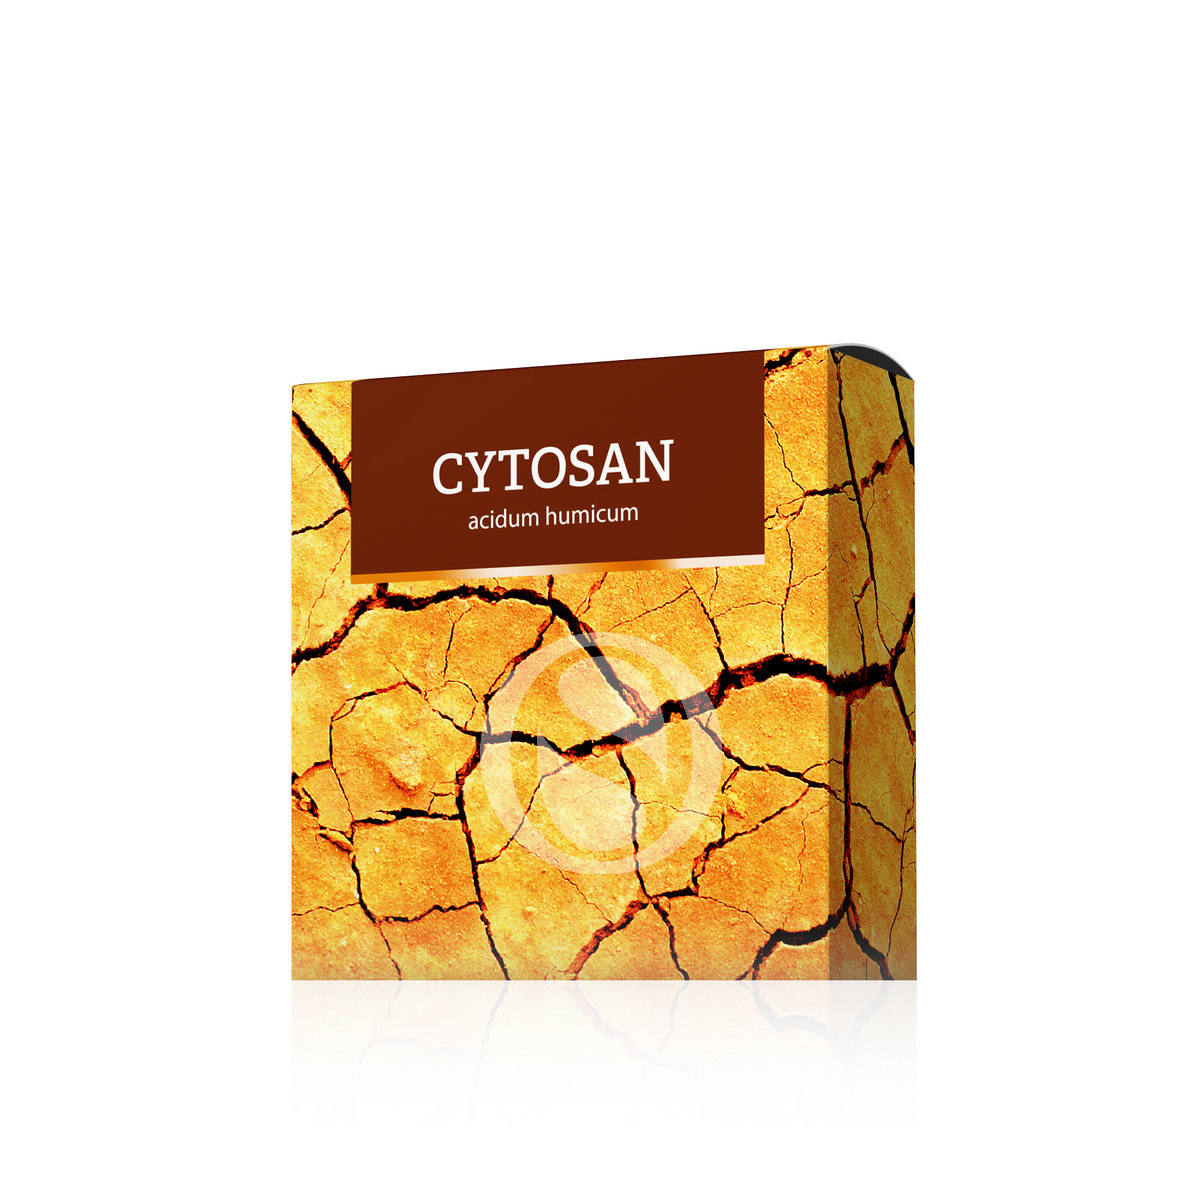 Produktbild Energy Group CYTOSAN Humatseife 100g